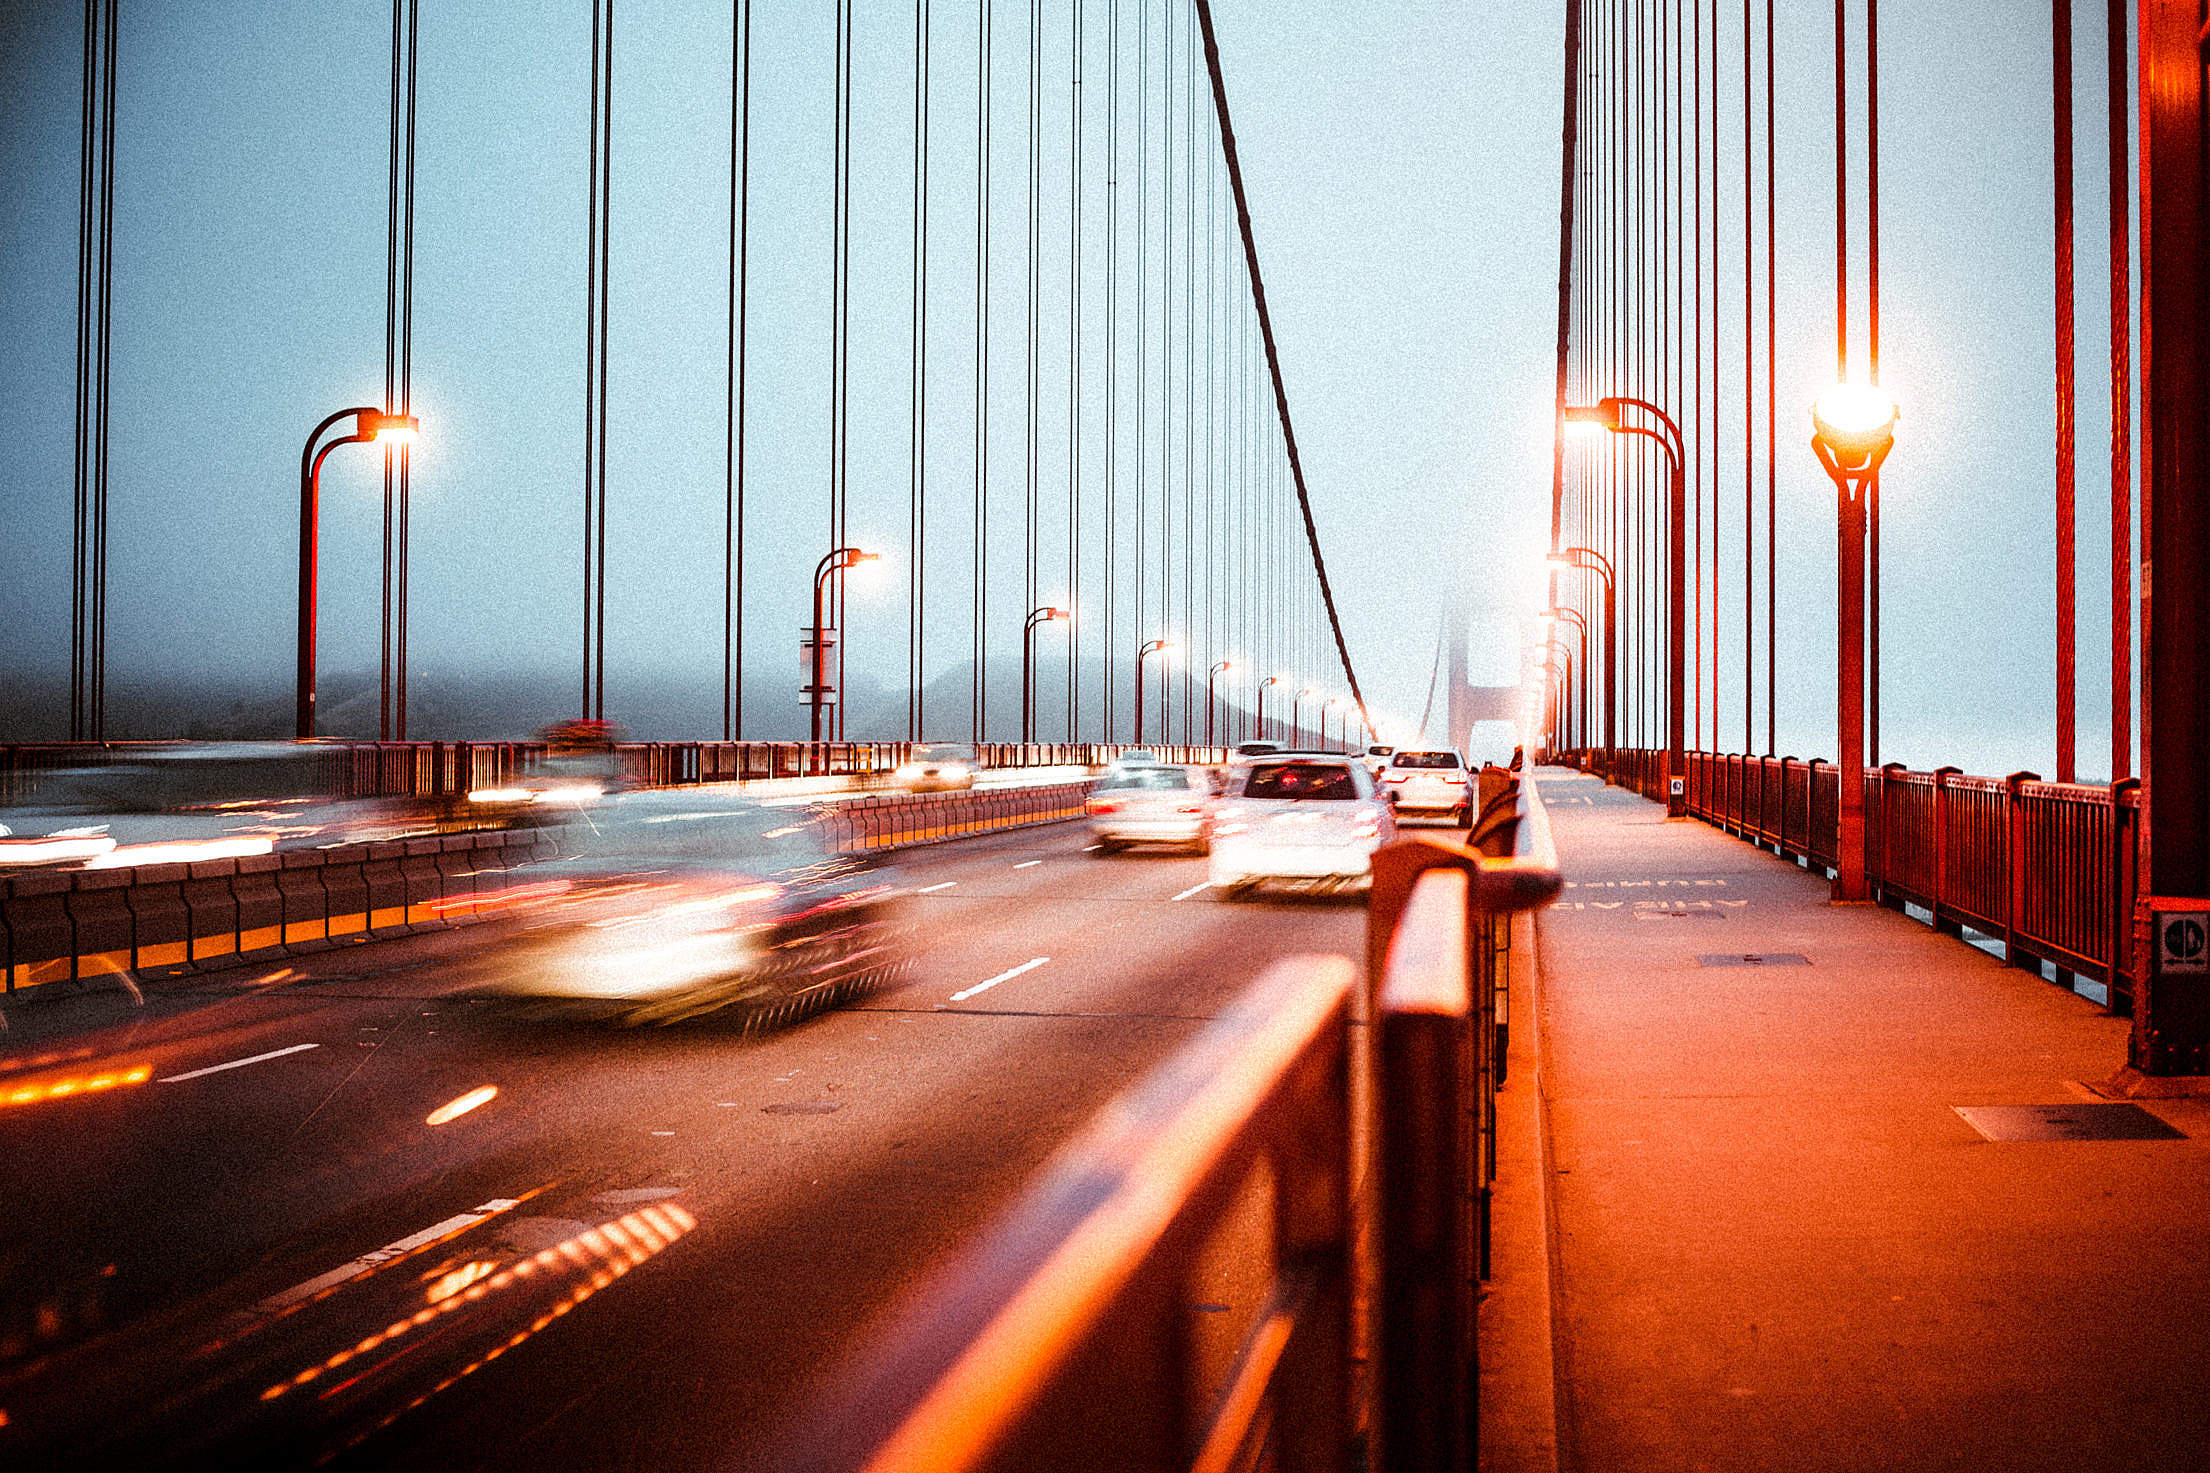 Download Evening Traffic on the Golden Gate Bridge Free Stock Photo